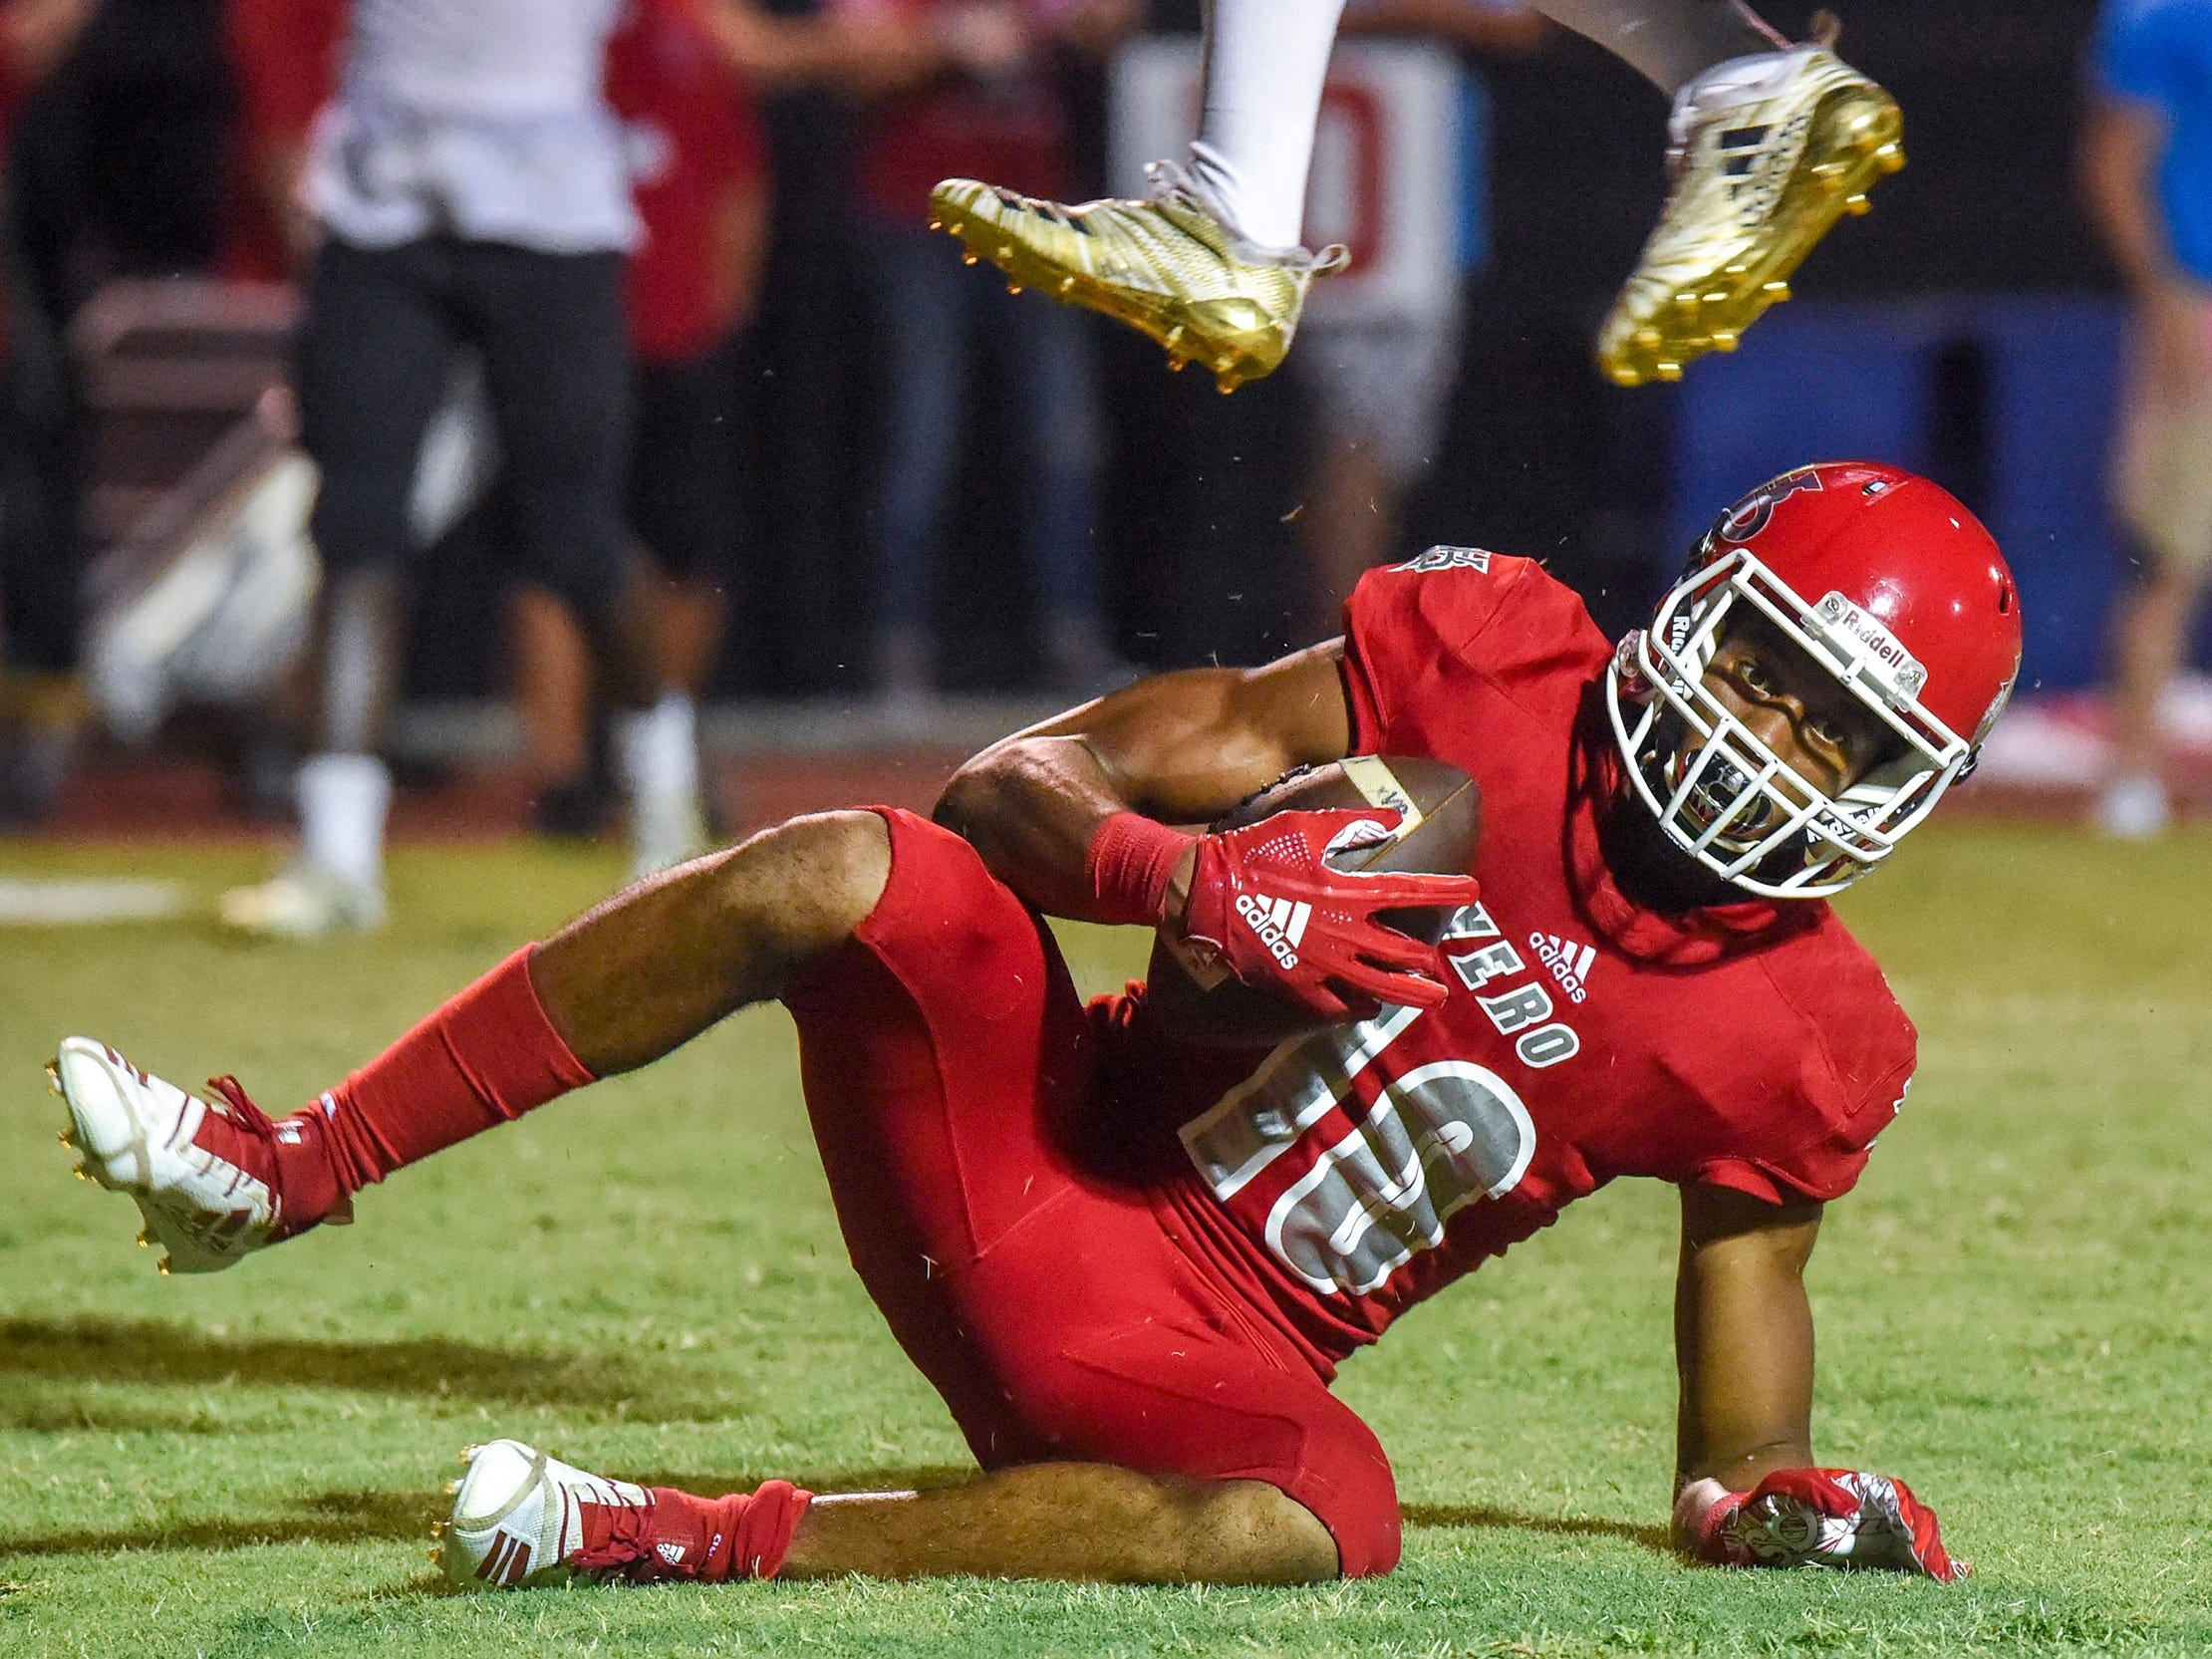 Vero Beach battled Treasure Coast Friday, Oct. 12, 2018, during their high school football game at Vero Beach High School.